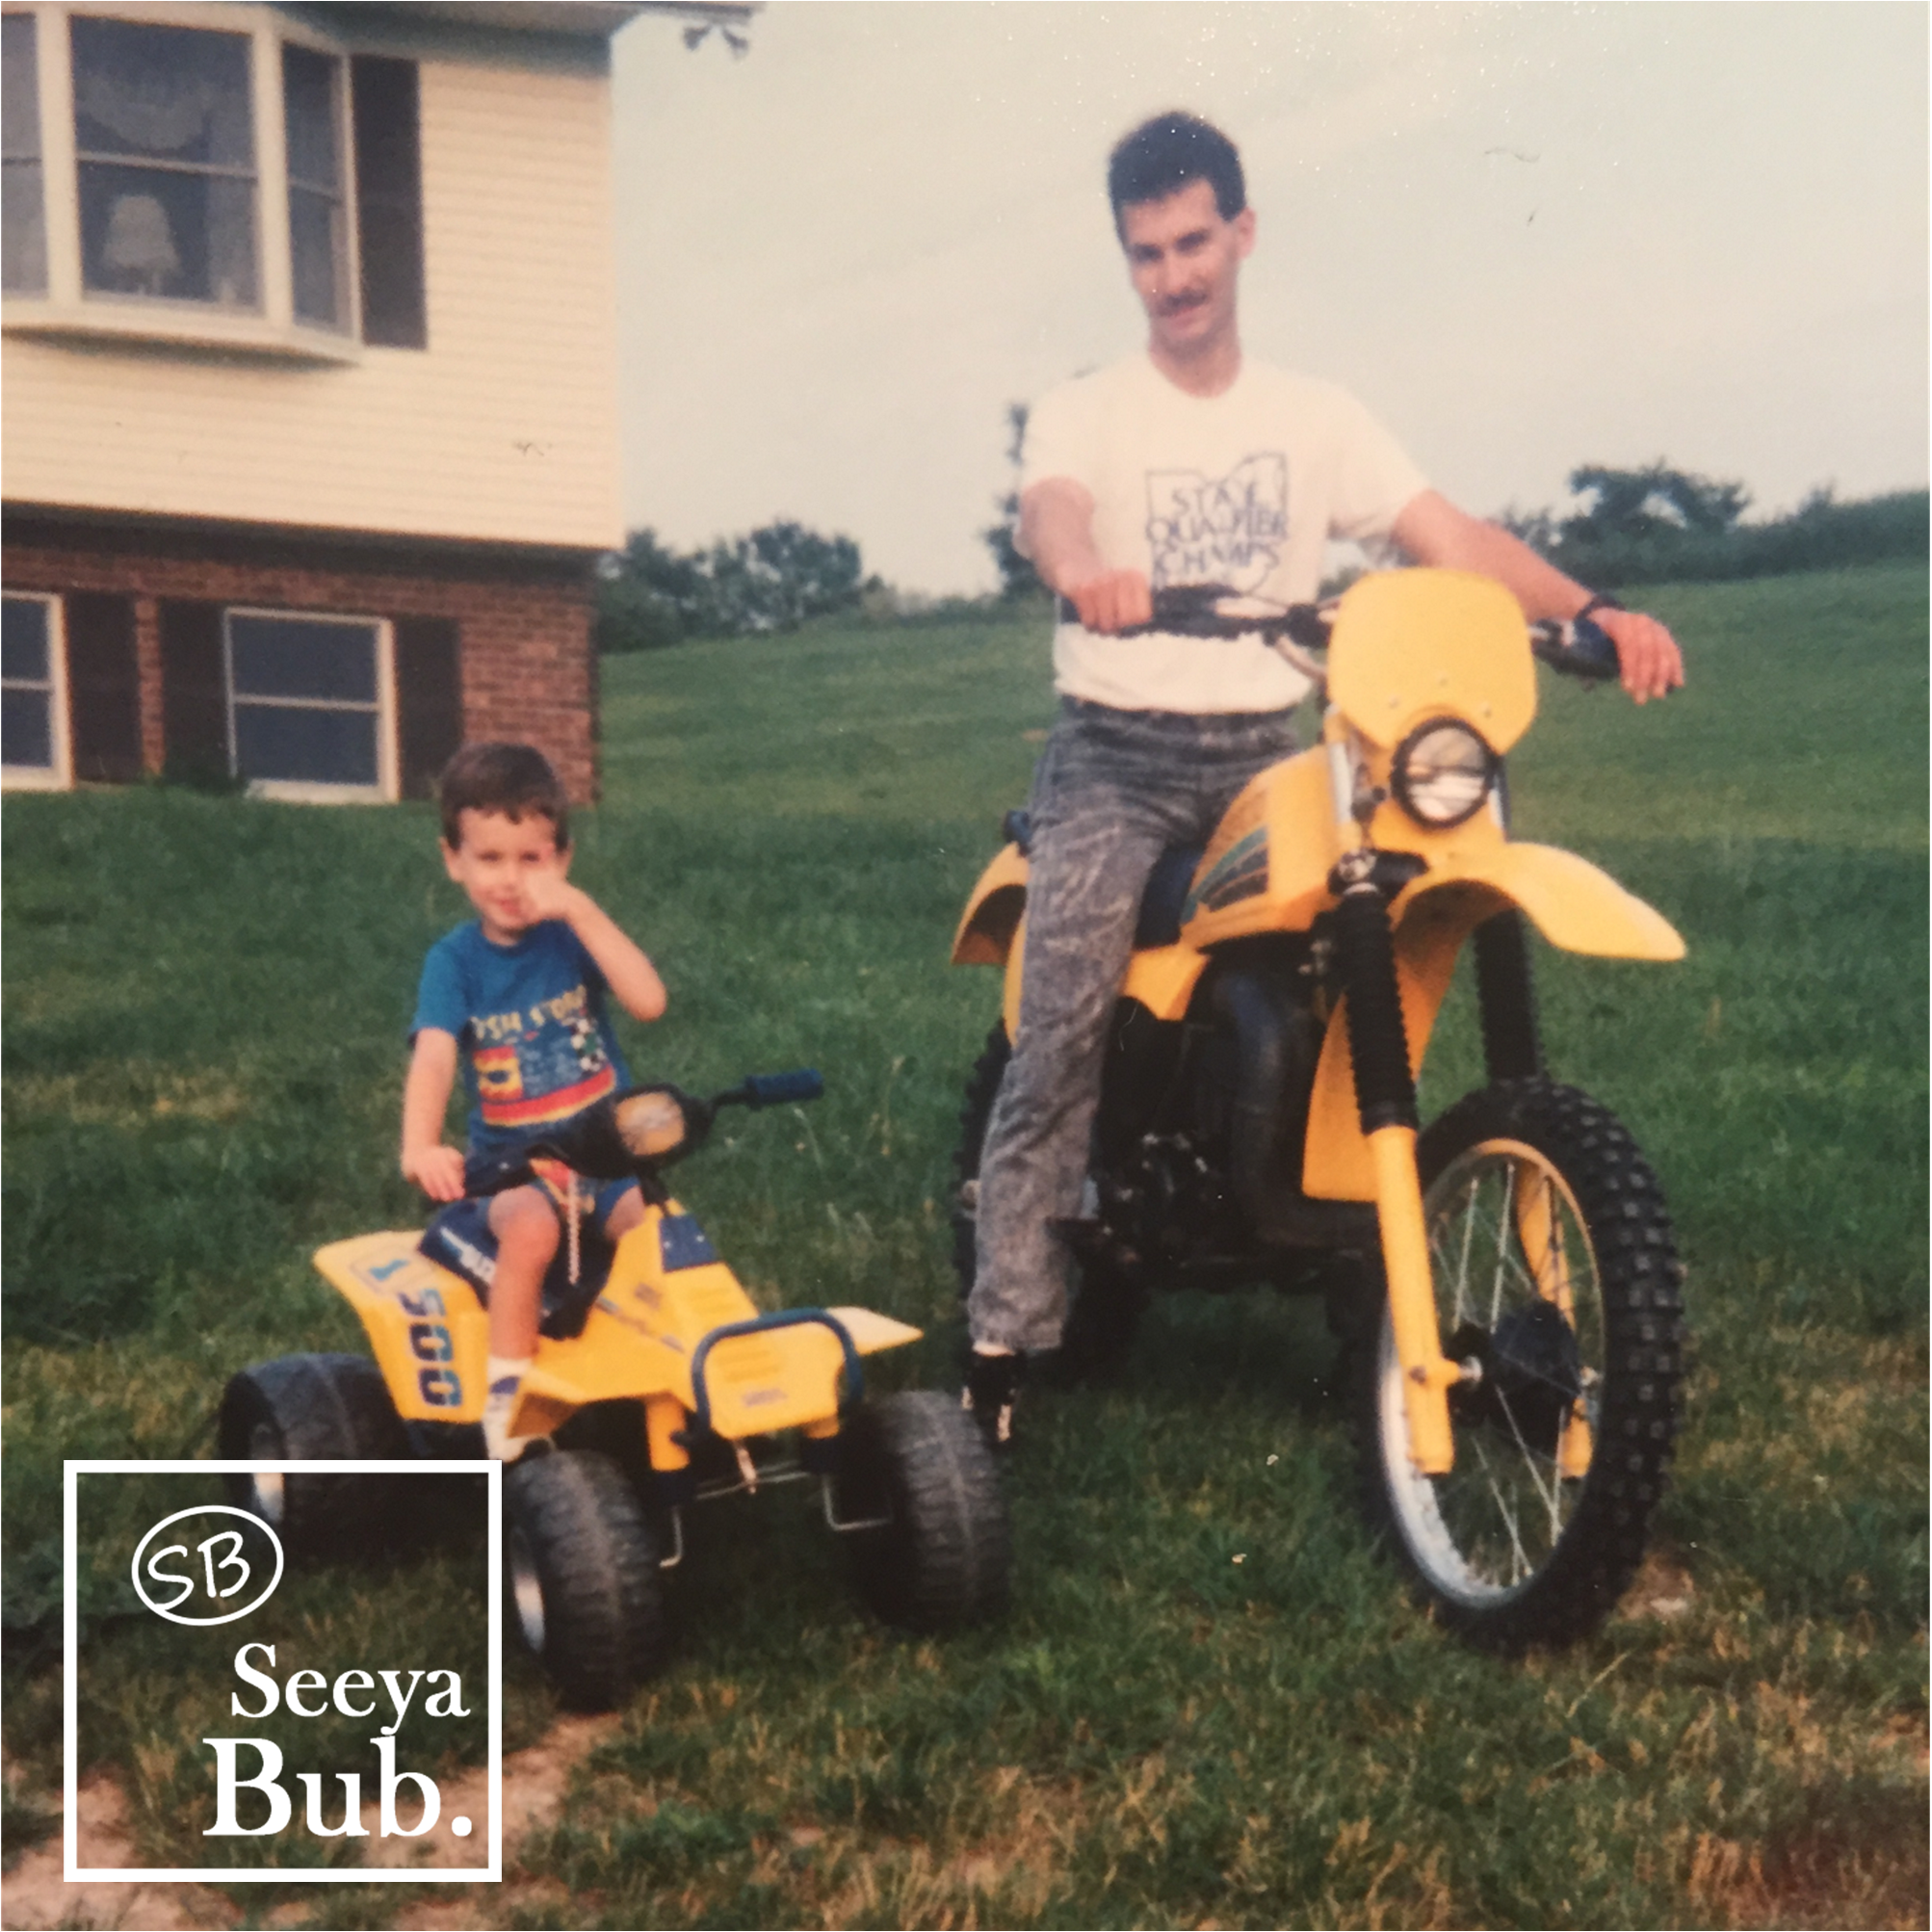 Dad and I on Dirtbike with SB Logo